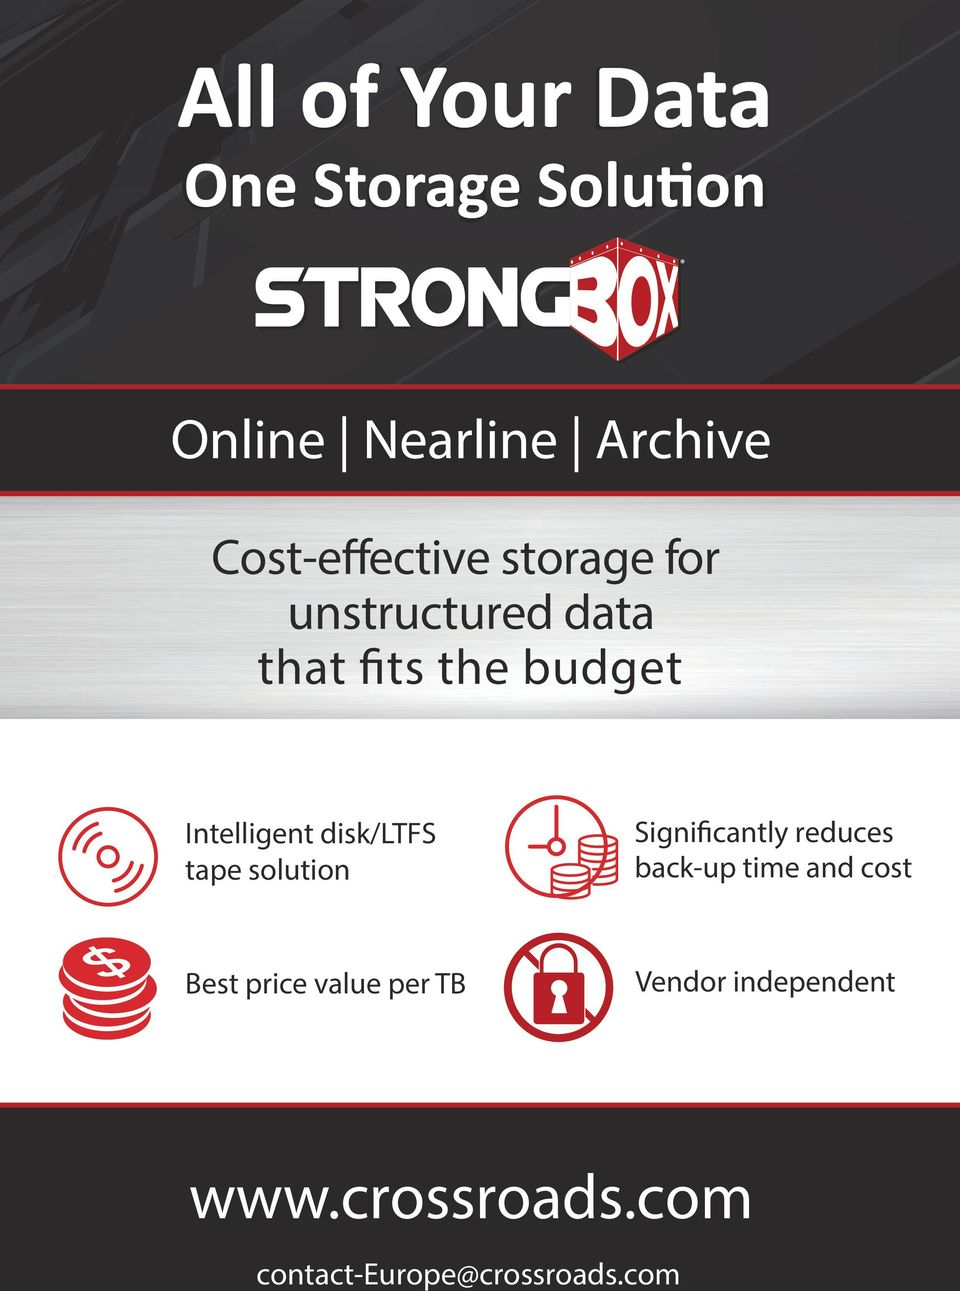 Intelligent disk/ltfs tape solution Significantly reduces back-up time and